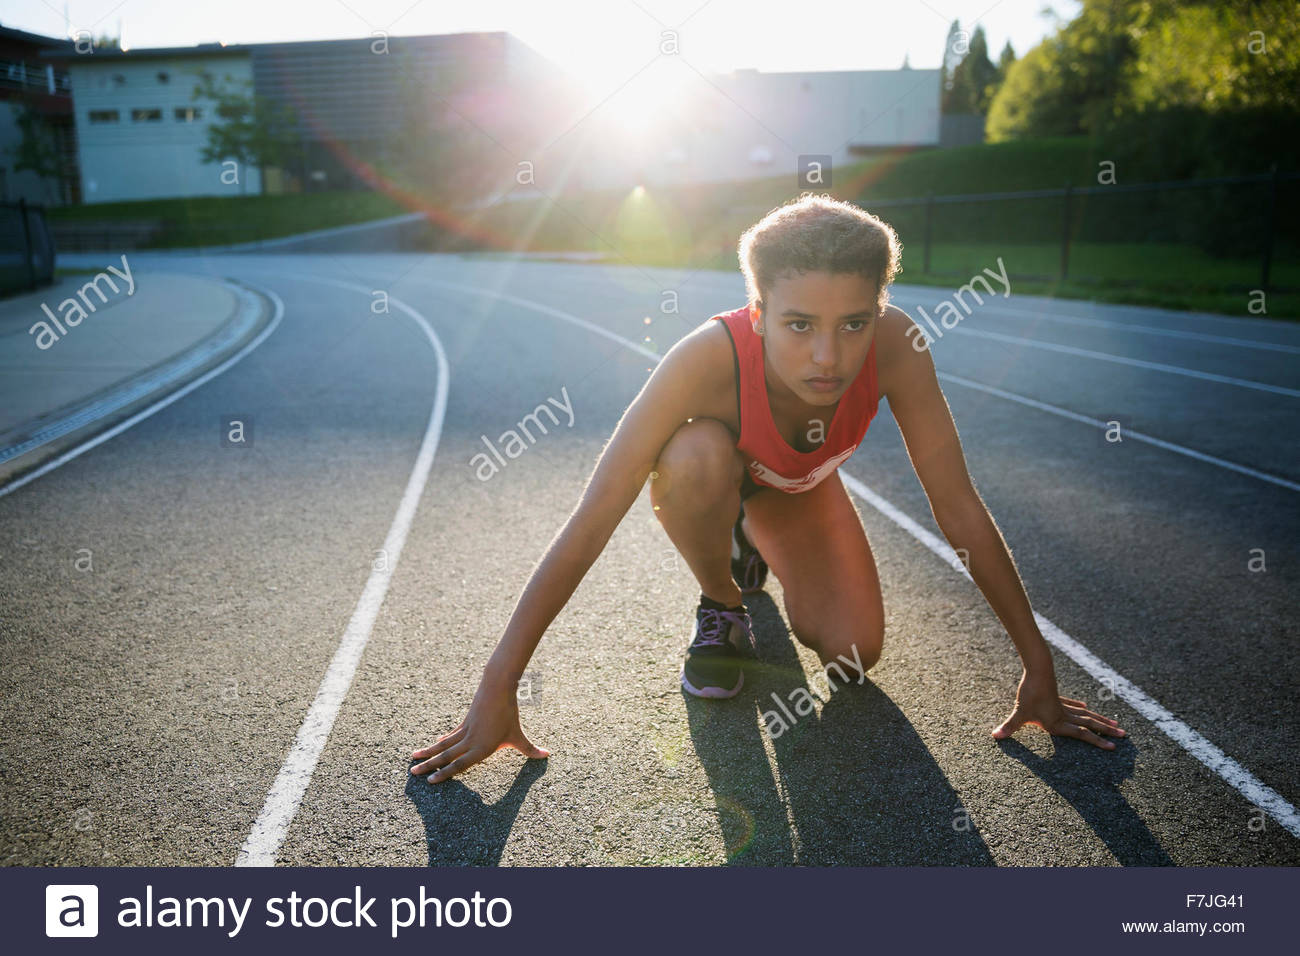 Focused high school track and field athlete ready - Stock Image